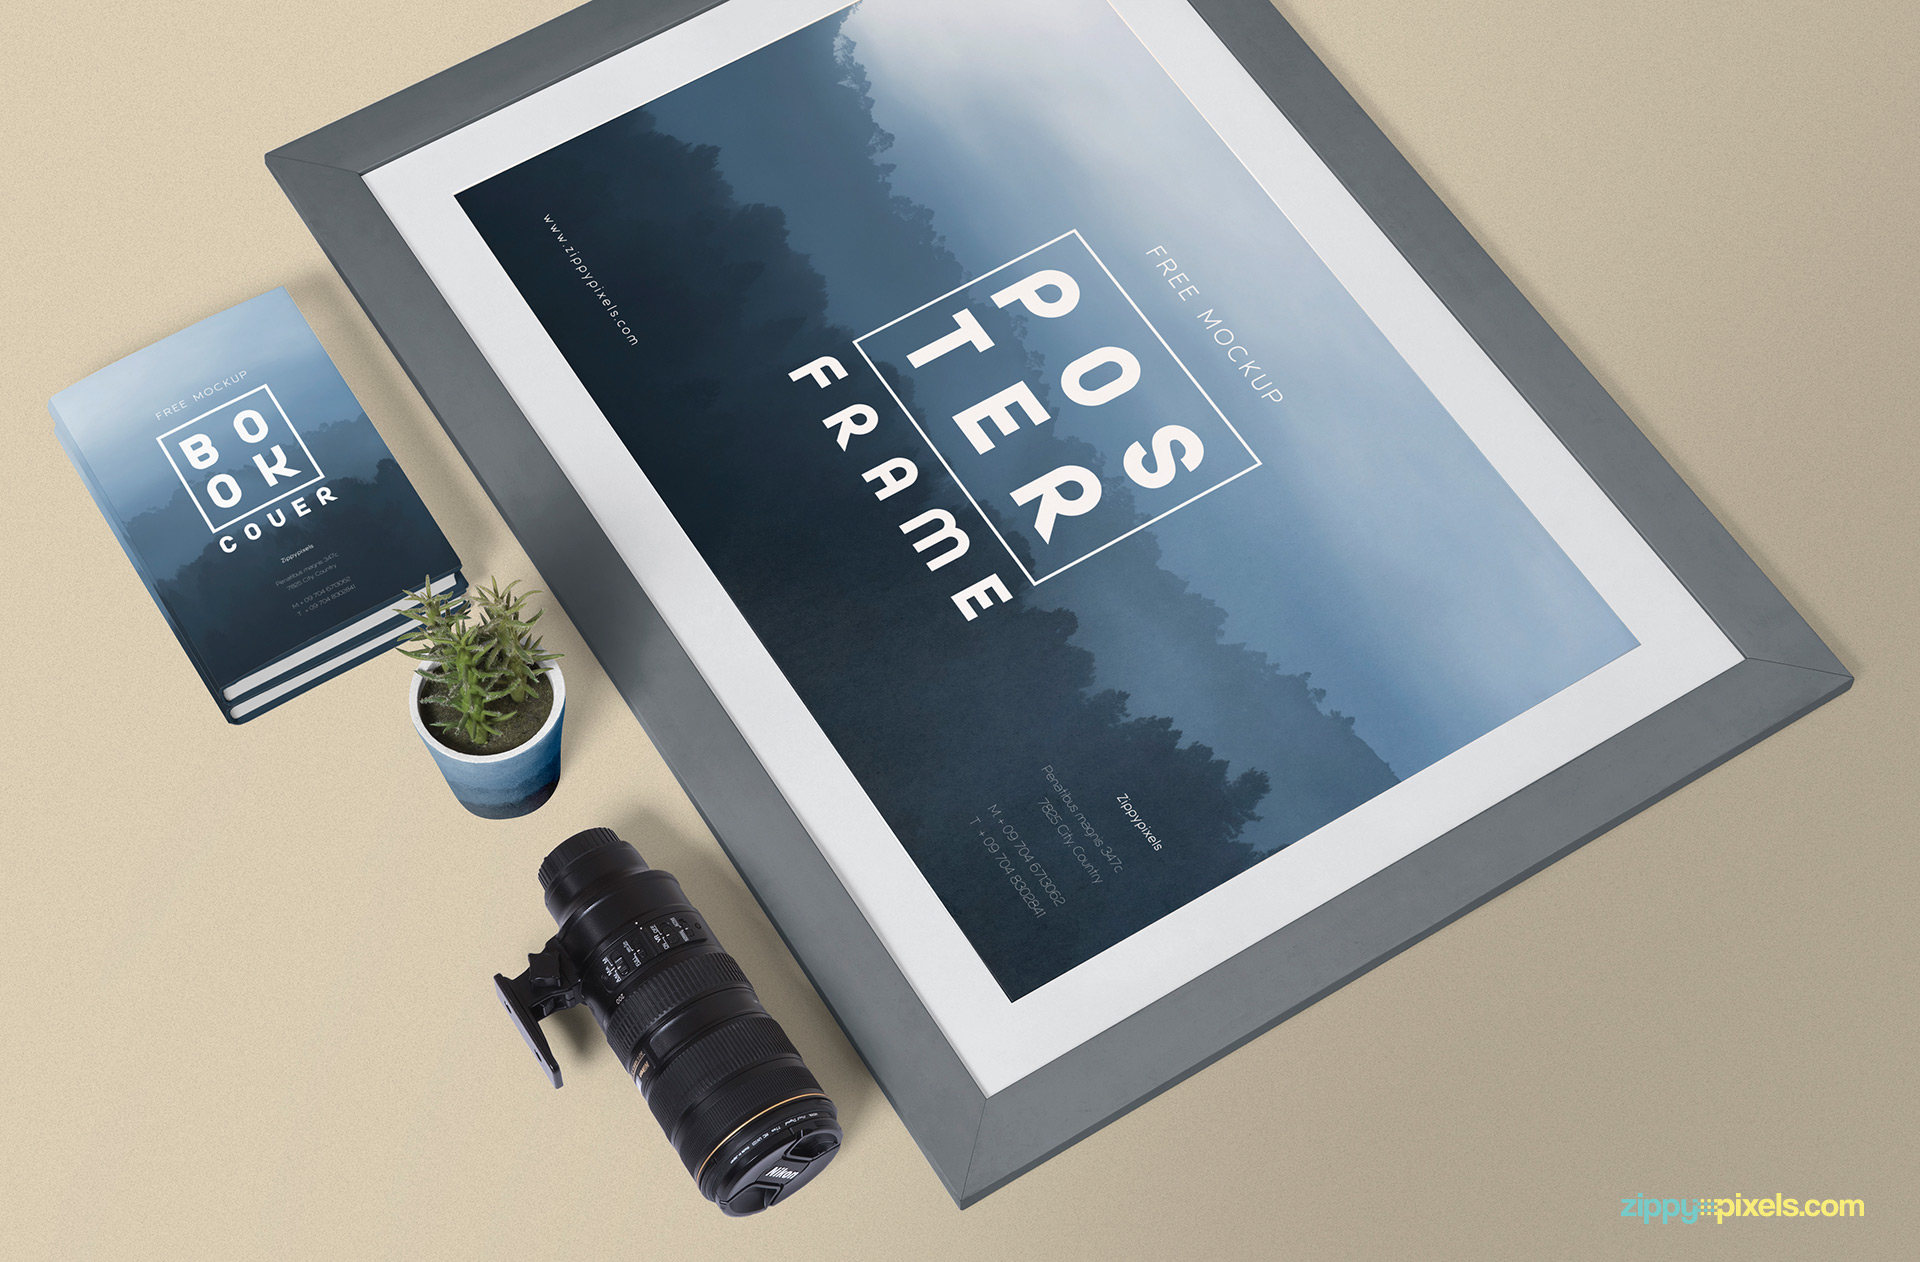 Fully customizable poster mockup free psd.